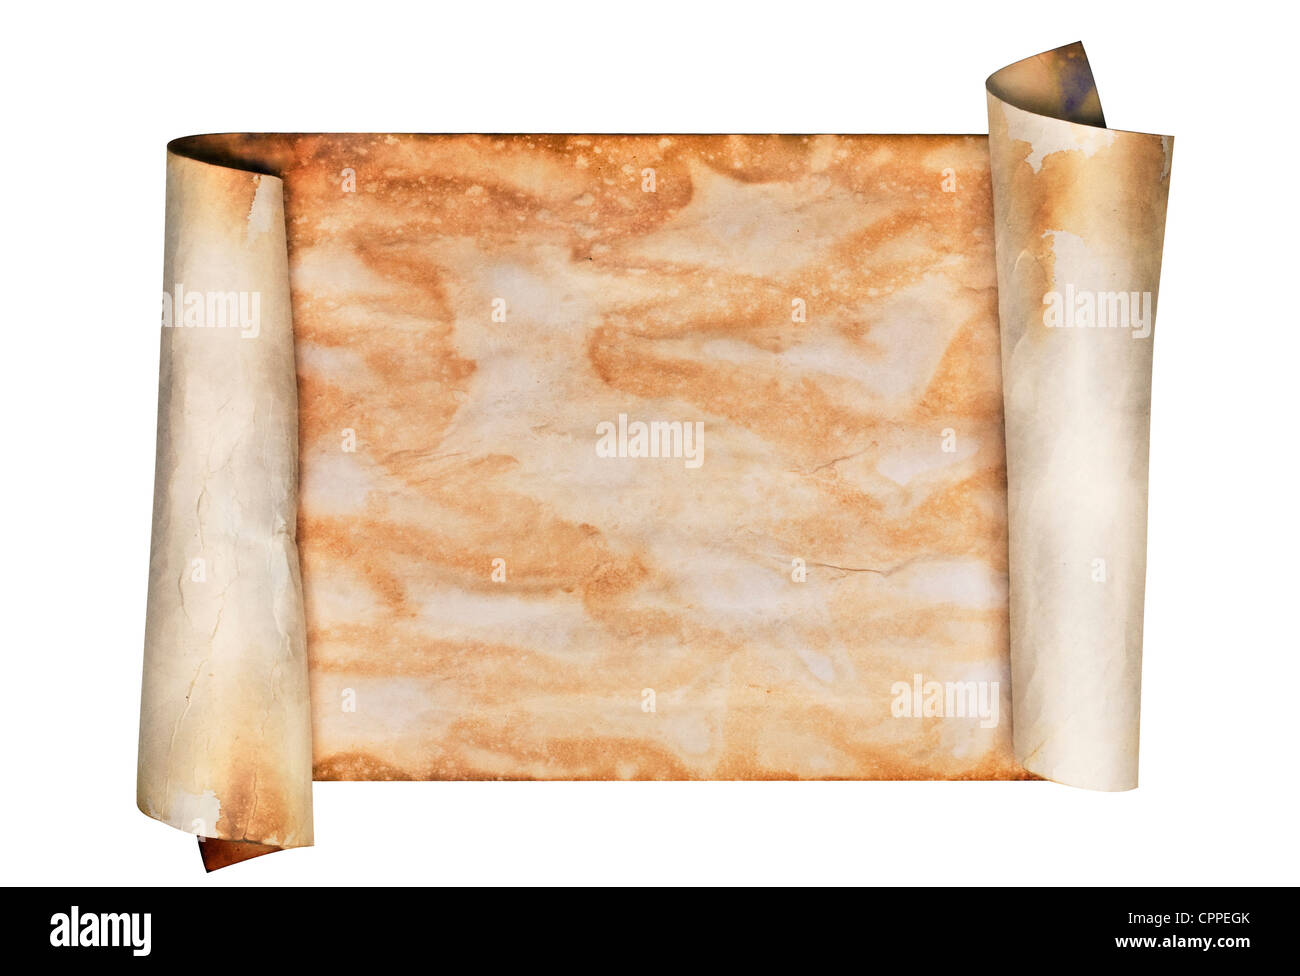 Ancient looking parchment made to look like an old scroll. Isolated on white with a clipping path. - Stock Image